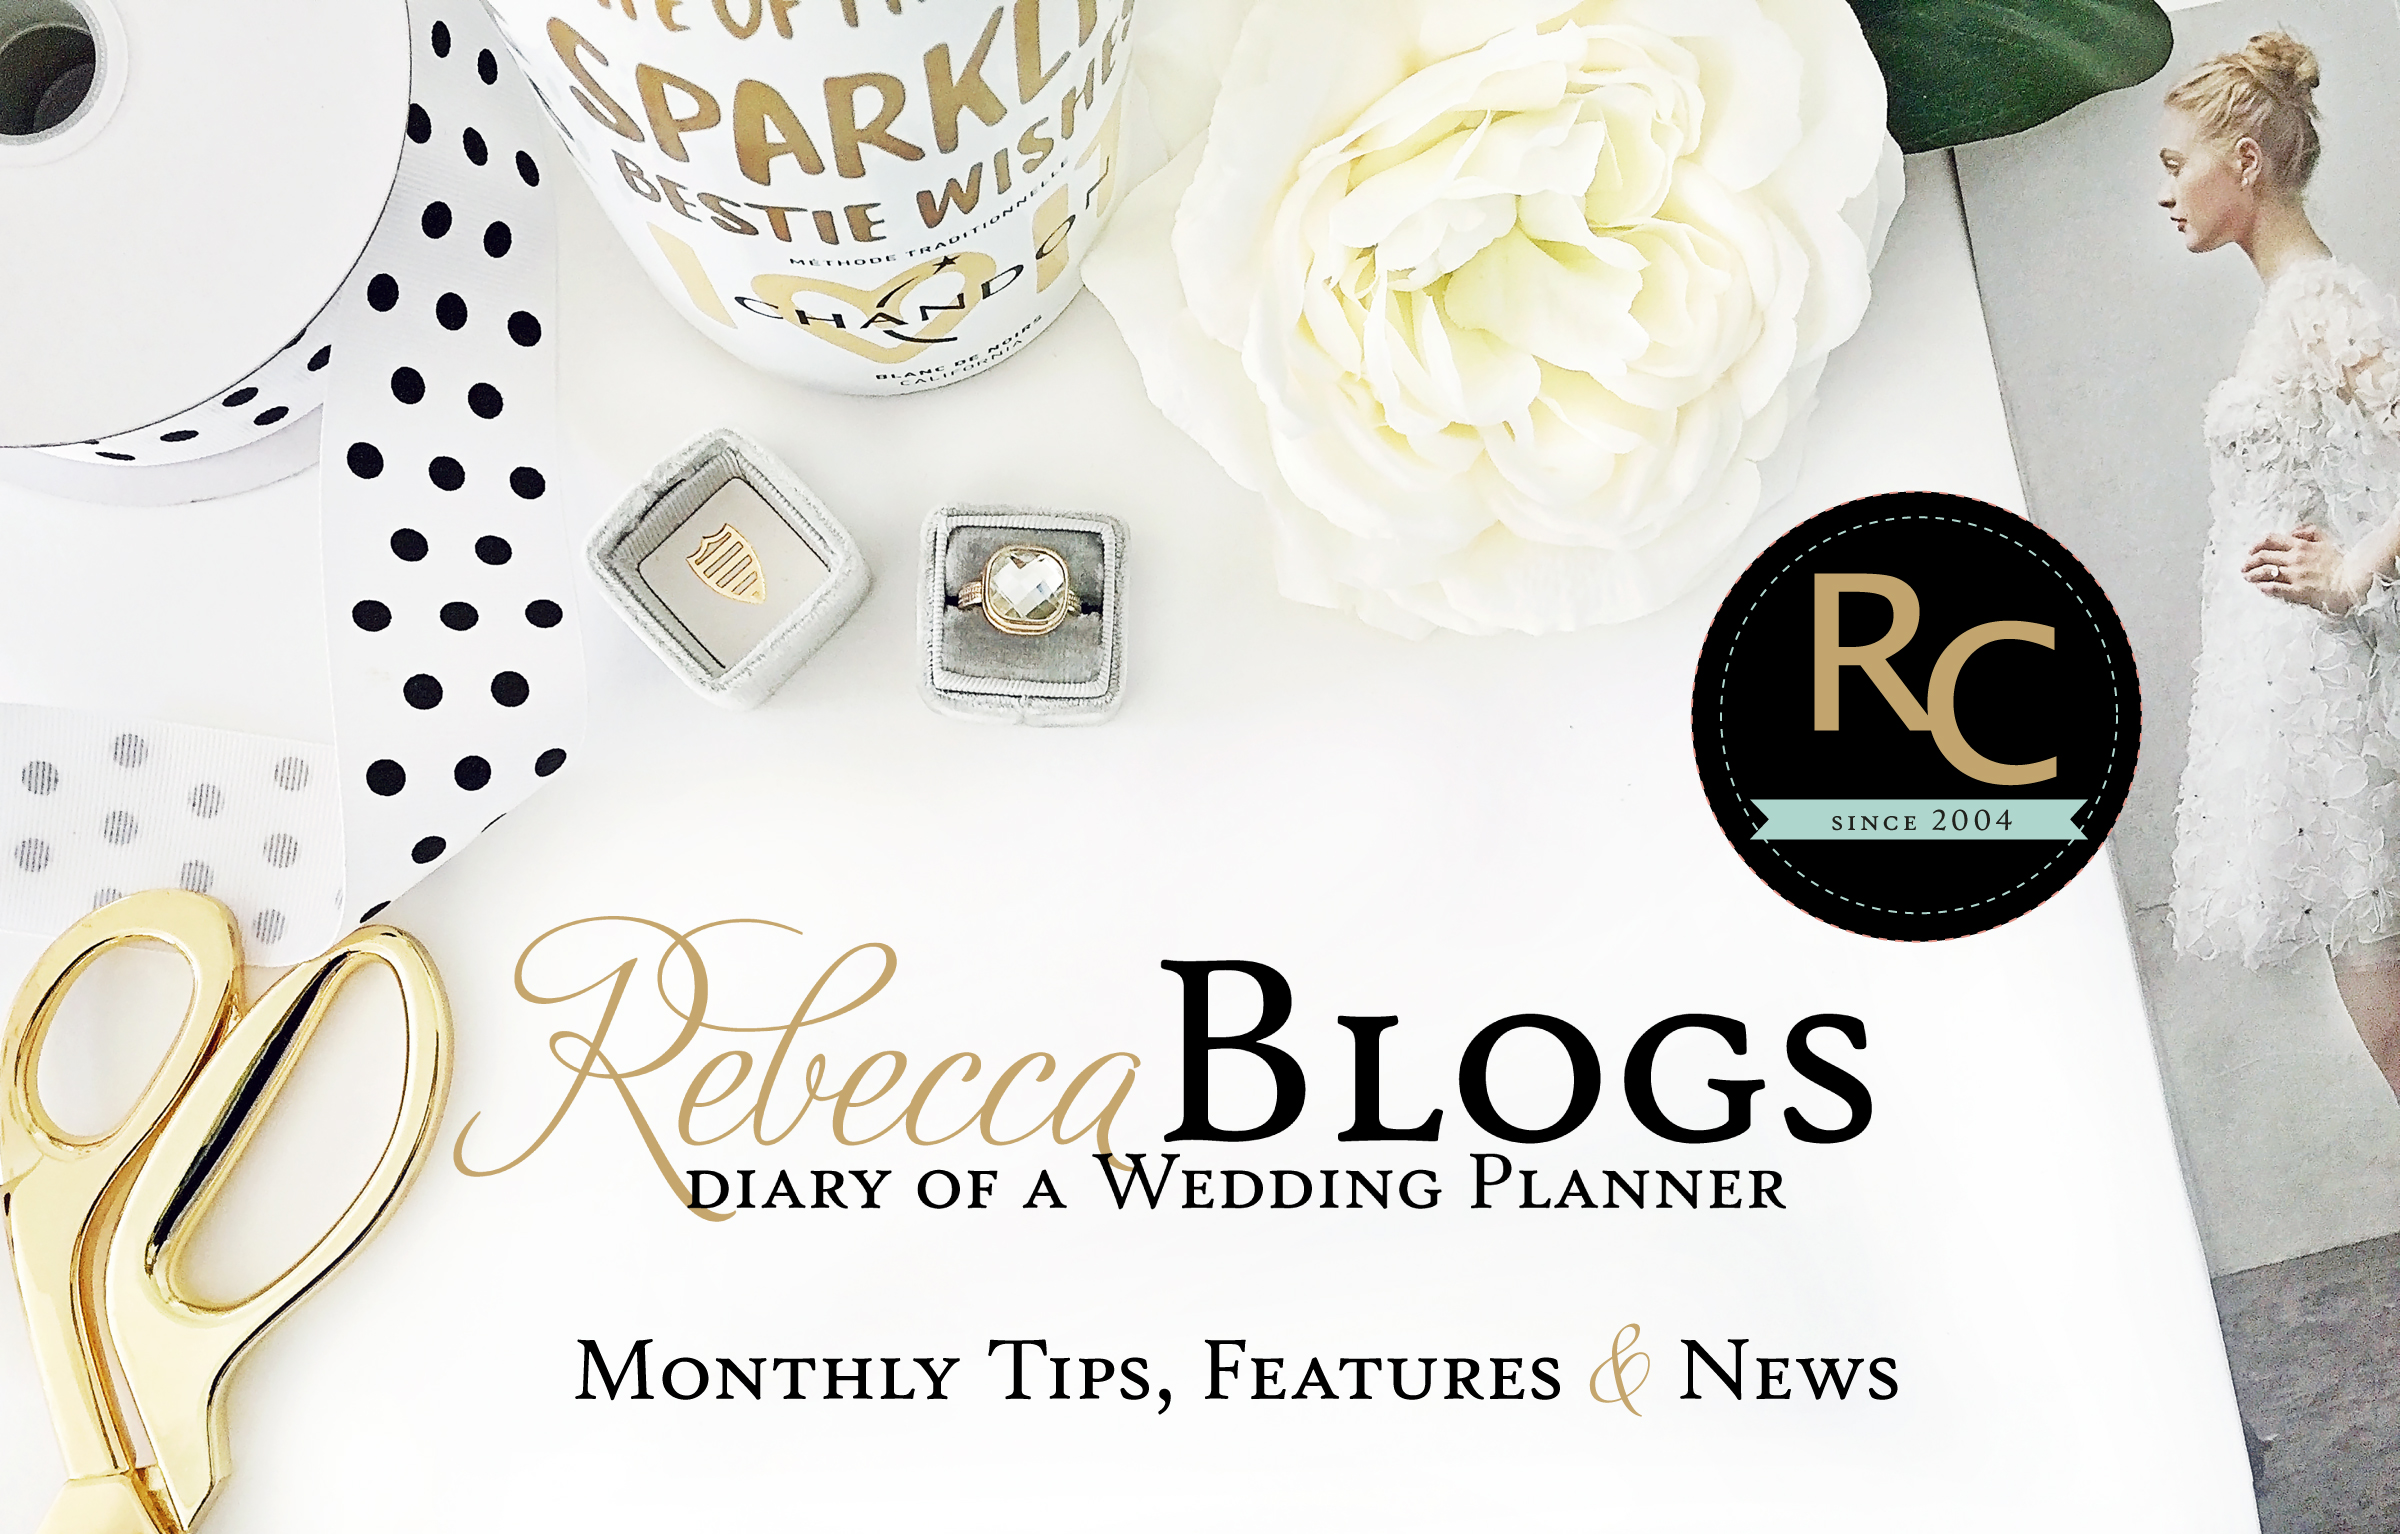 Welcome to Rebecca Blogs!